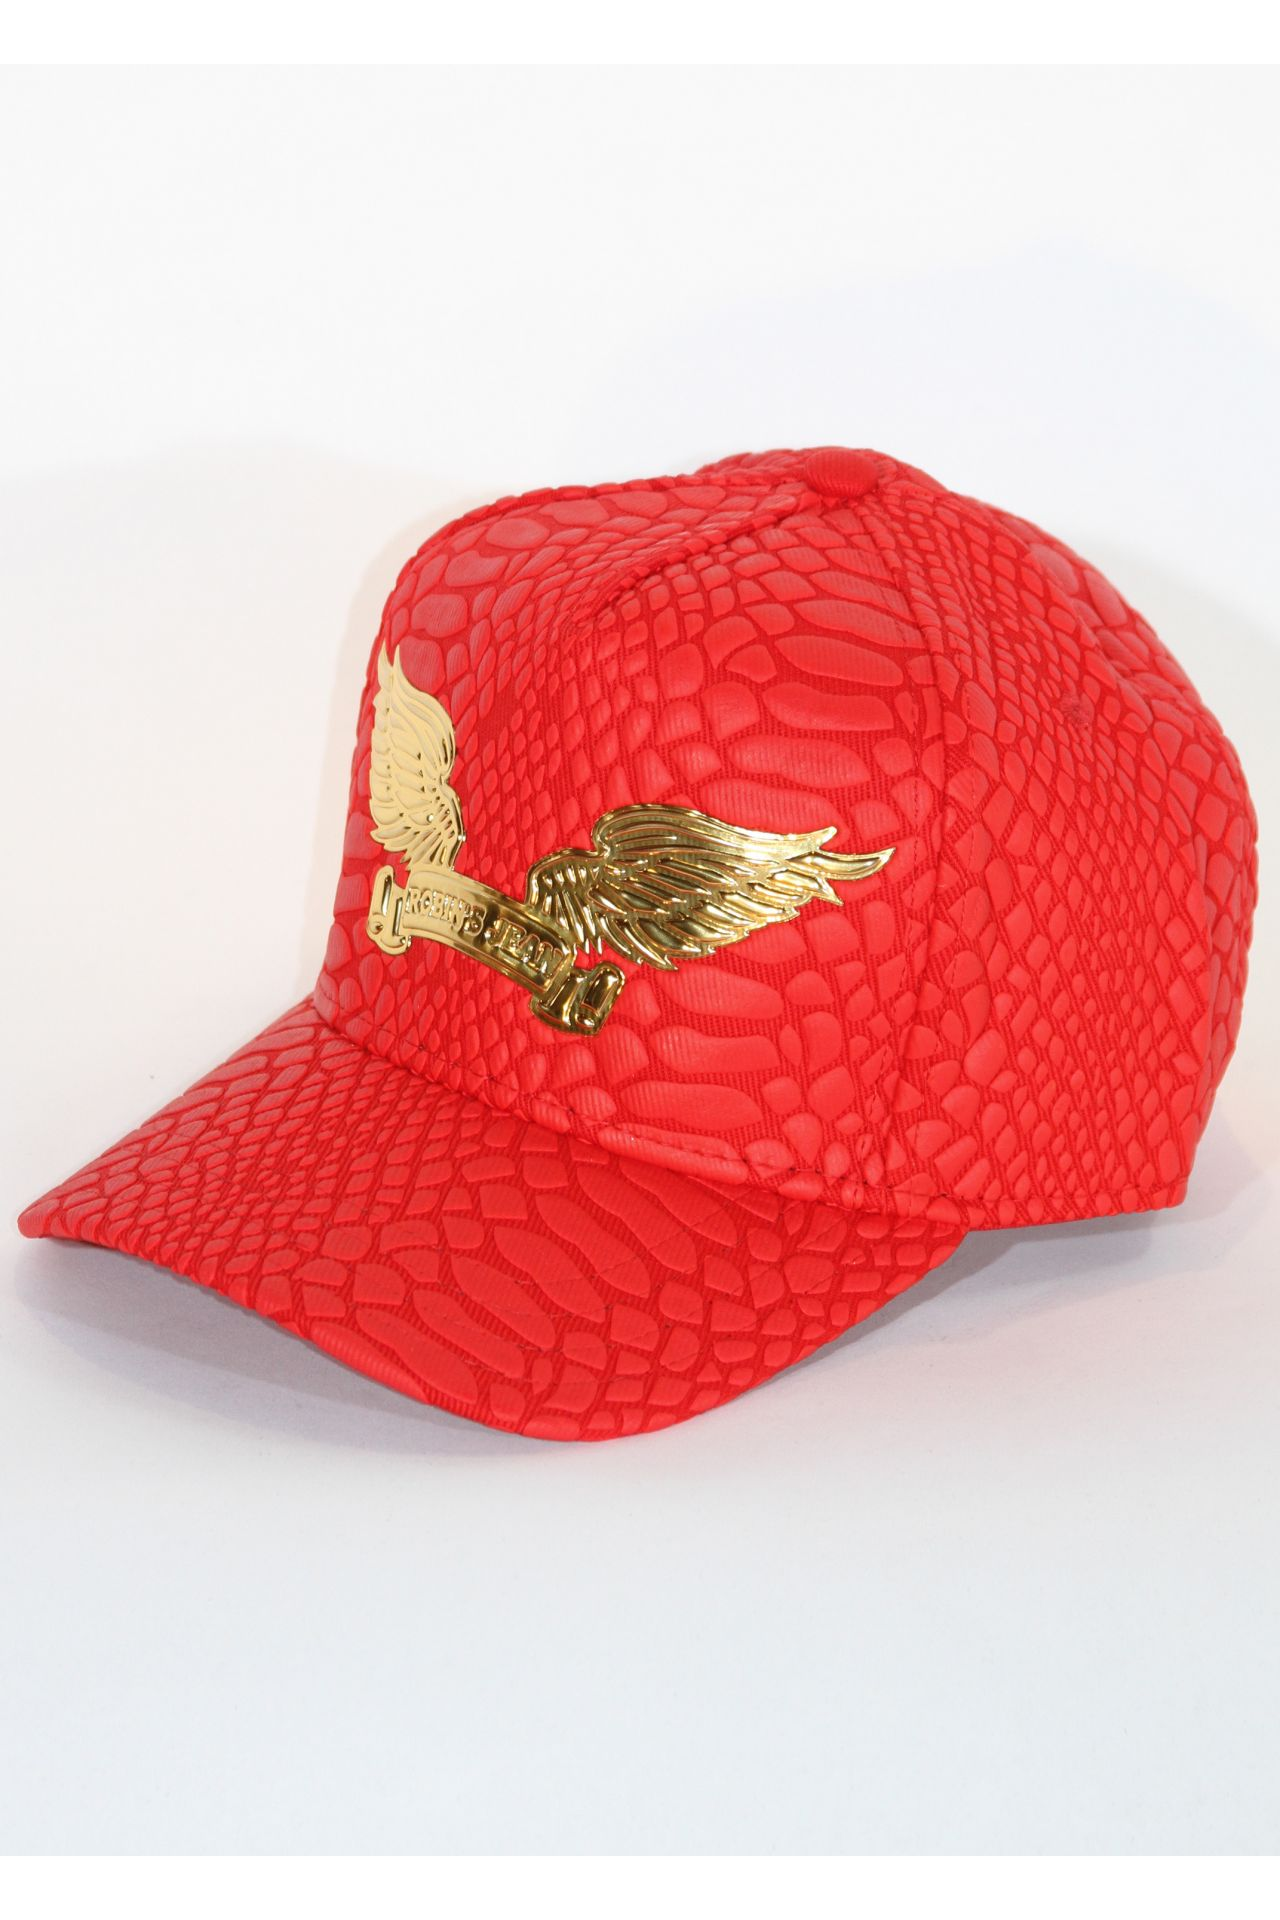 CRACKLE HAT IN RED